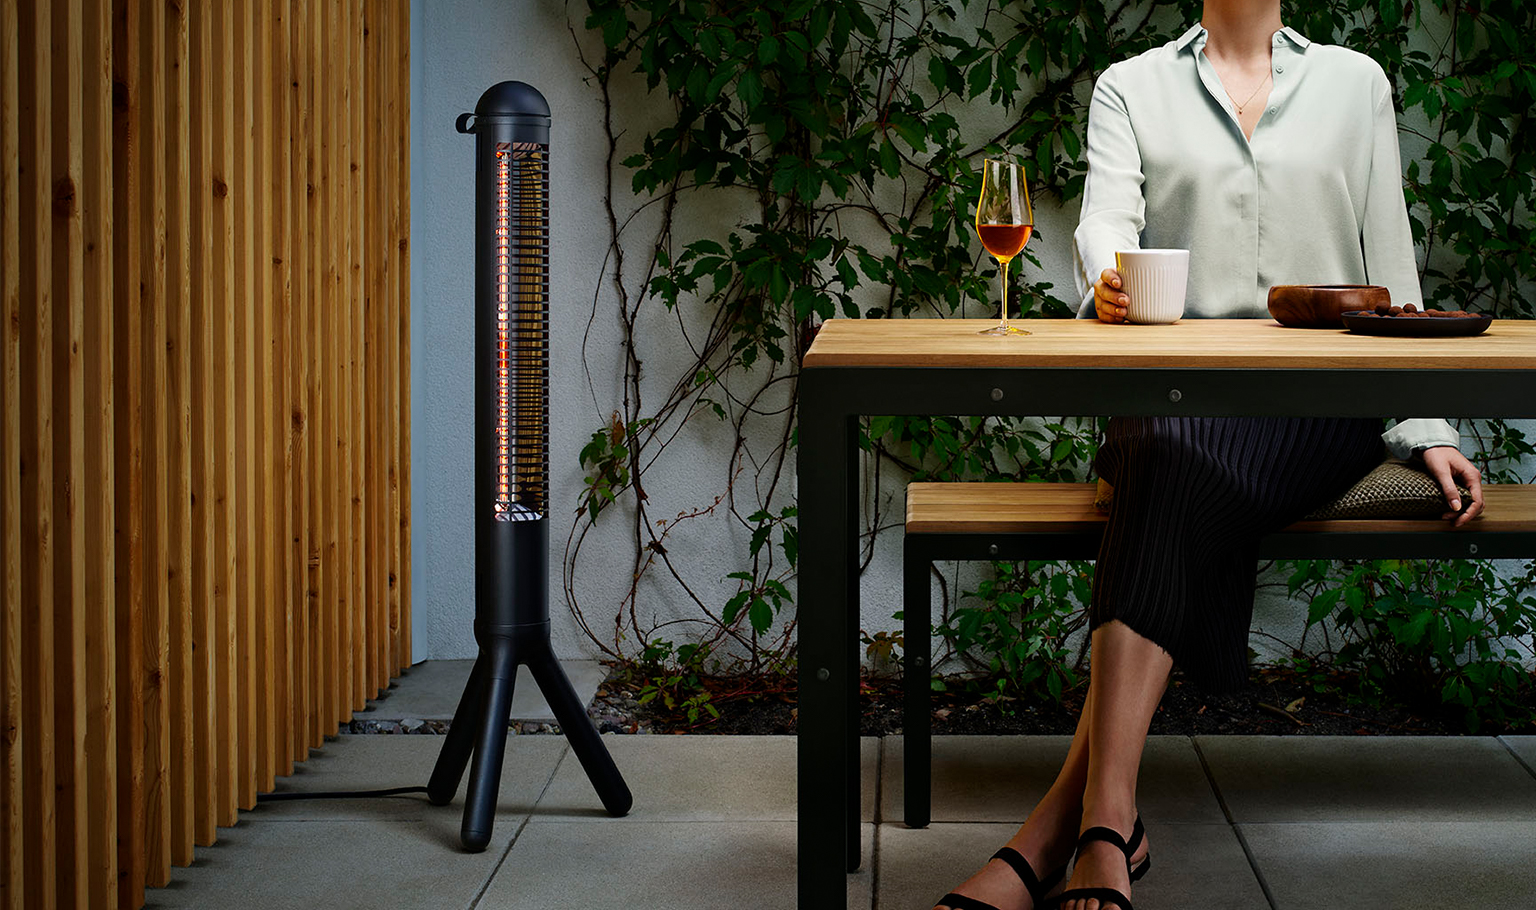 <p>The electric HeatUp makes the outdoors glow. HeatUp is Co2-friendly and up to 10 x cheaper than gas patio heaters.</p>